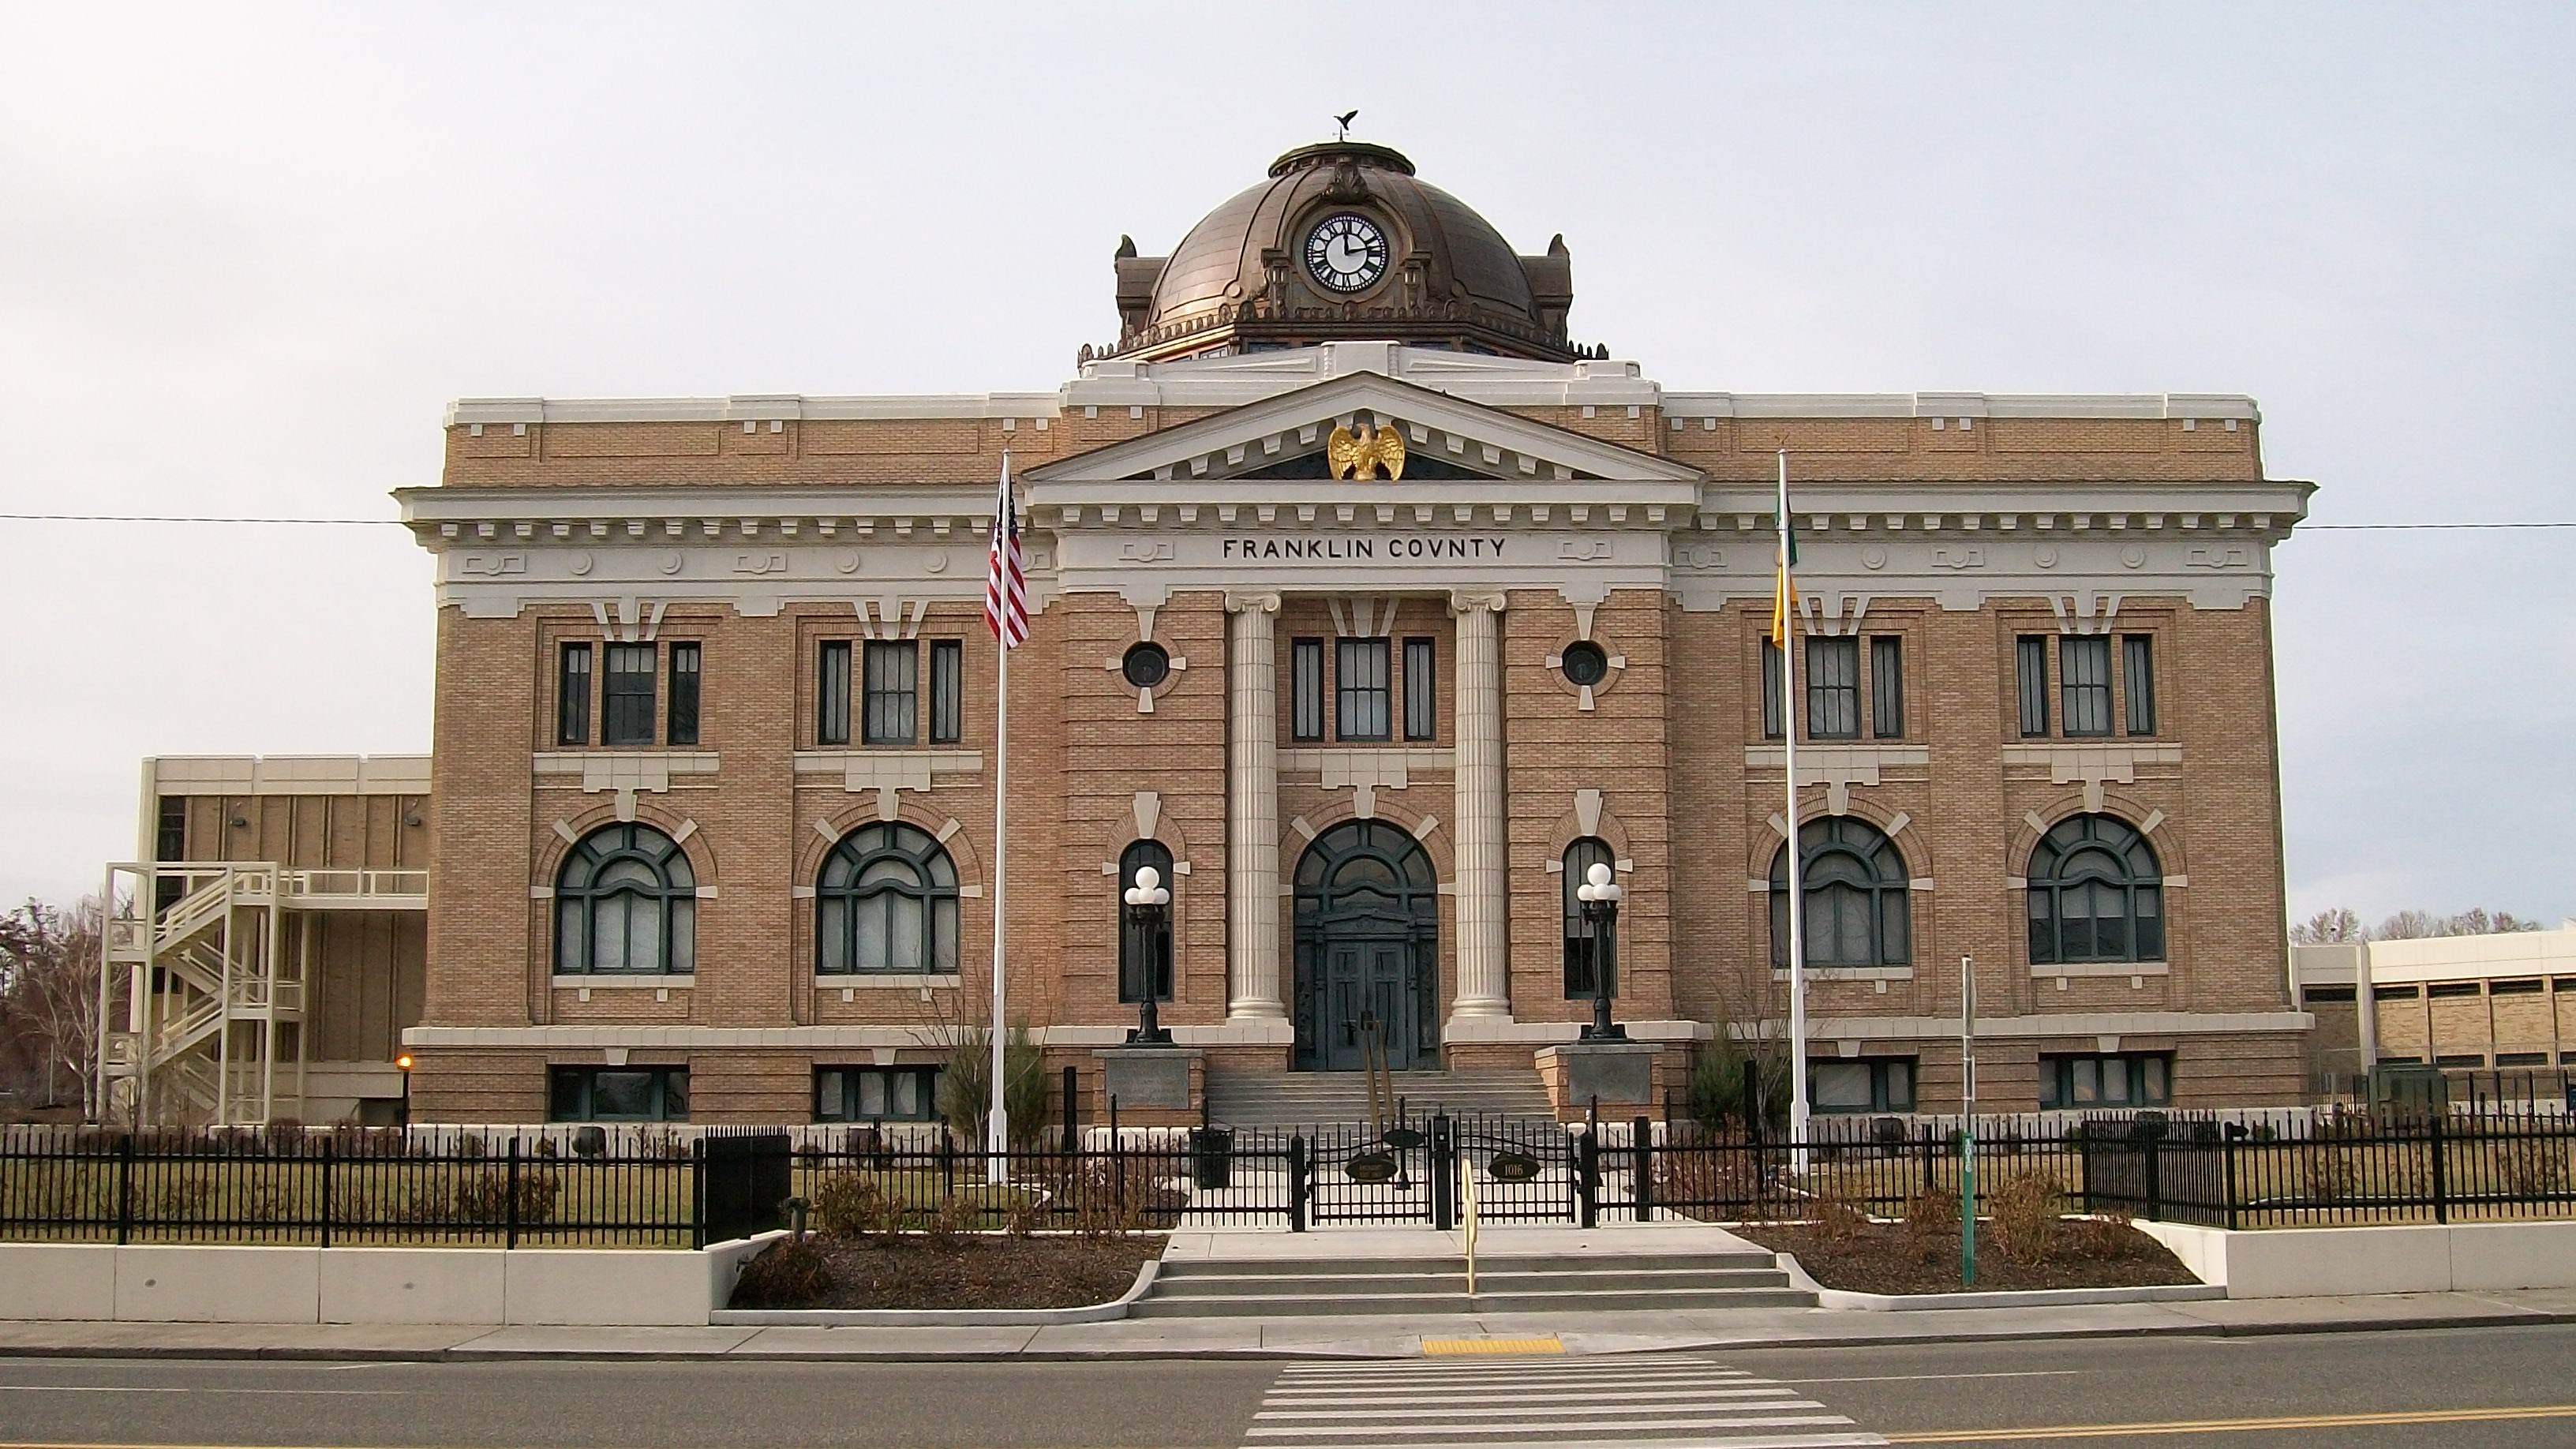 Franklin_County_Courthouse_in_Pasco.jpg